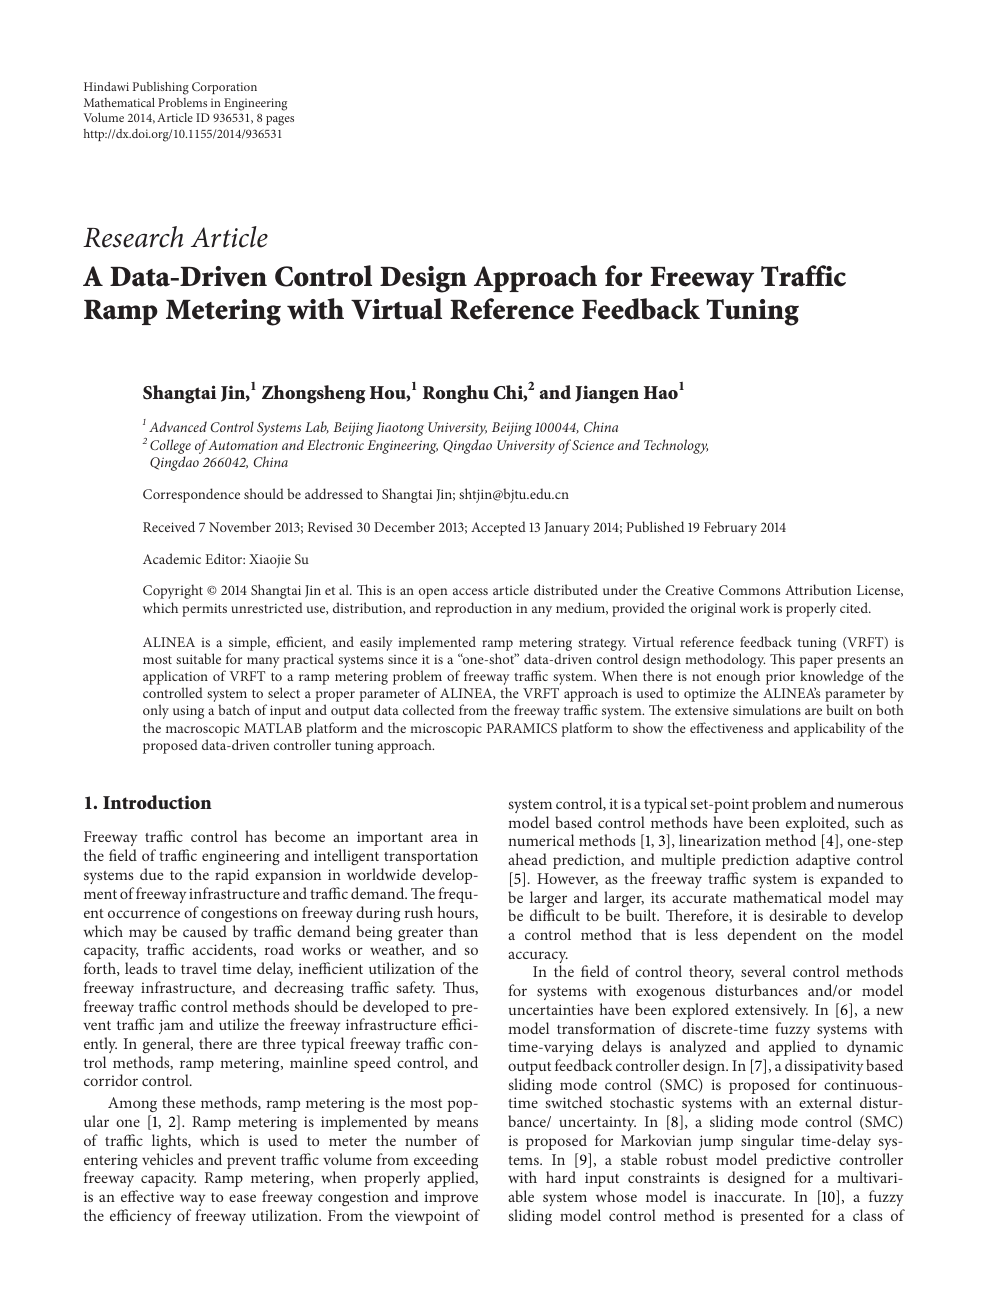 A Data-Driven Control Design Approach for Freeway Traffic Ramp